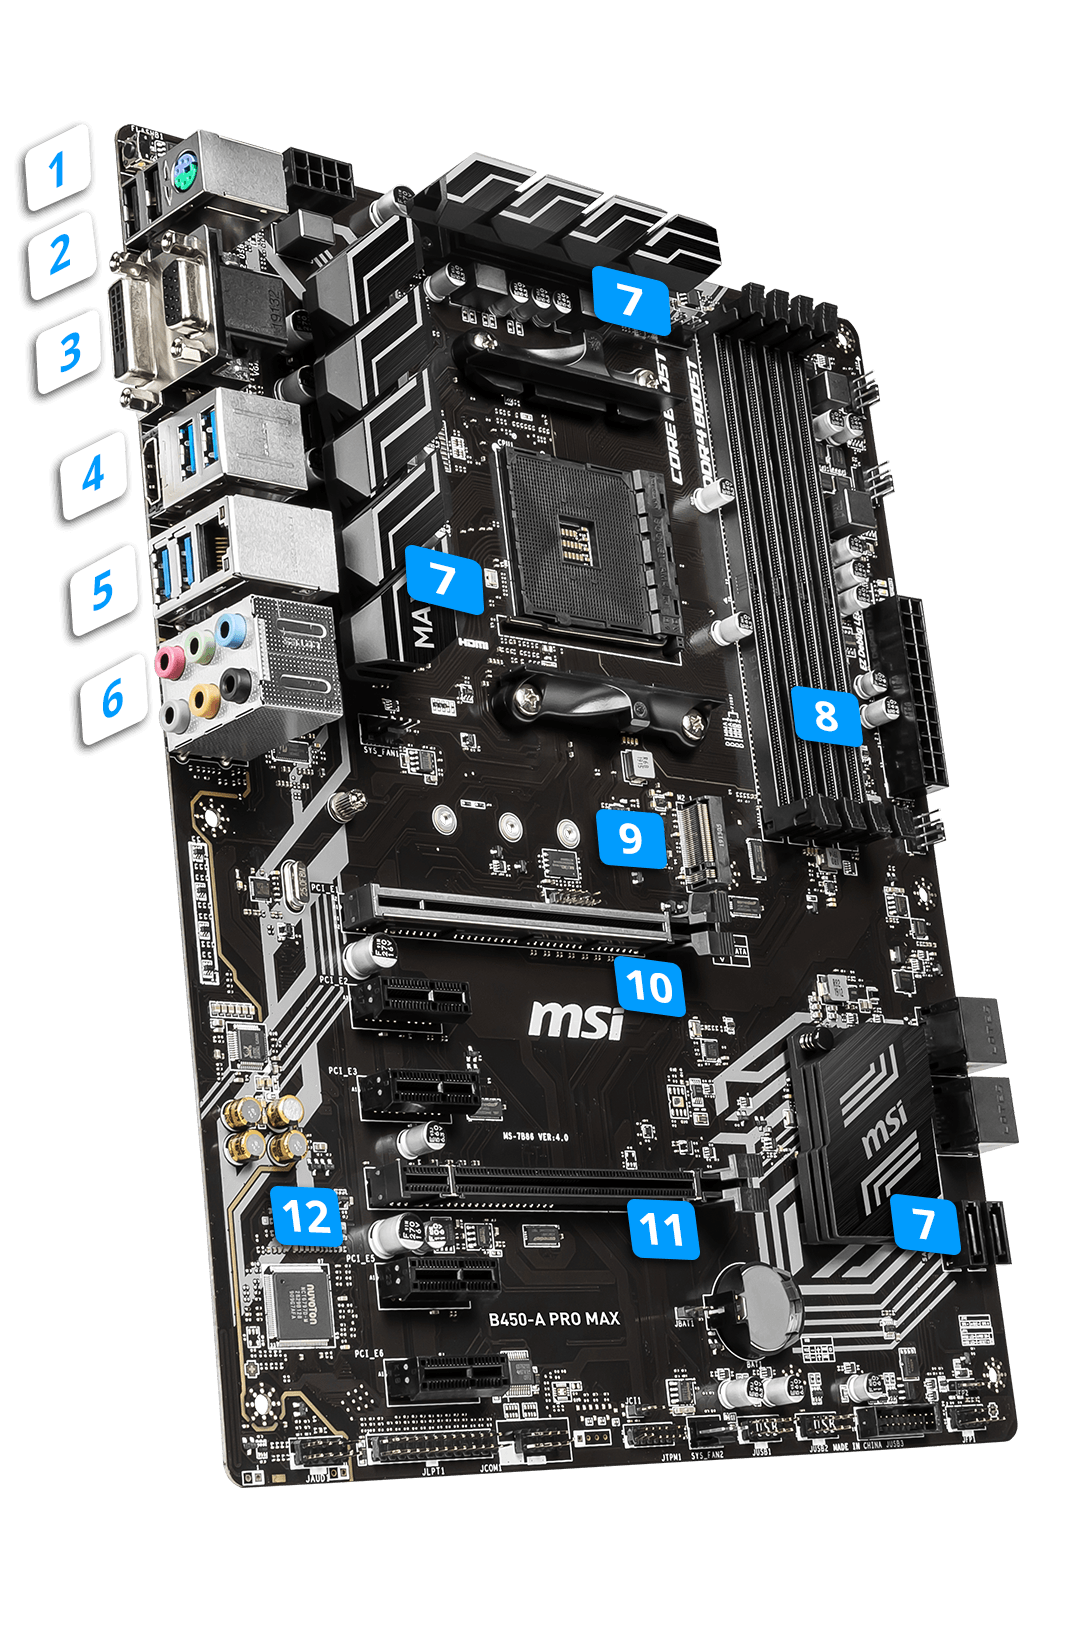 MSI B450-A PRO MAX overview